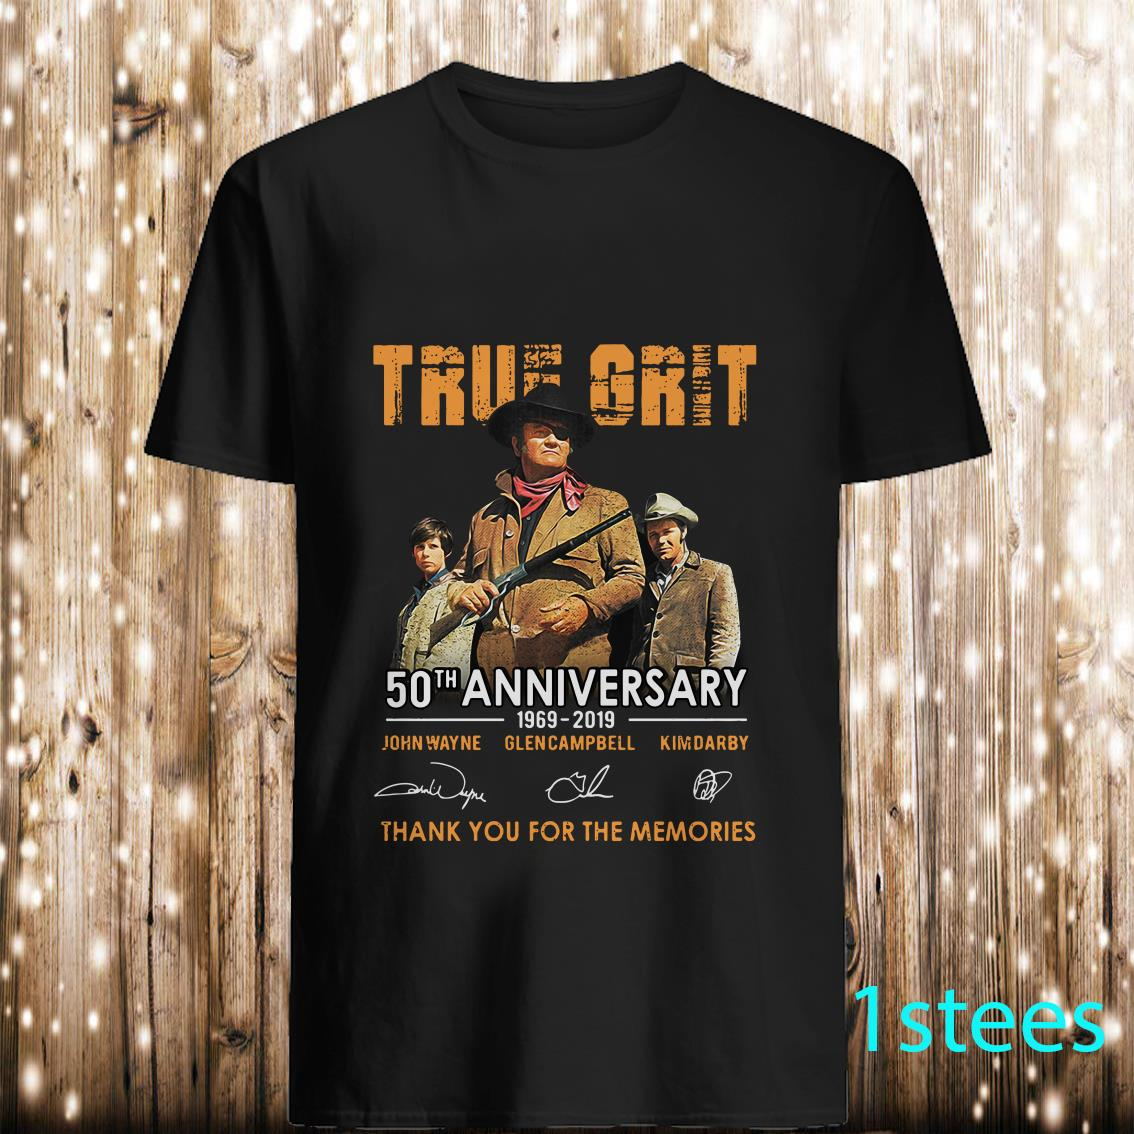 True Grit 50th Anniversary 1969-2019 Signatures Thank You For The Memories Shirt